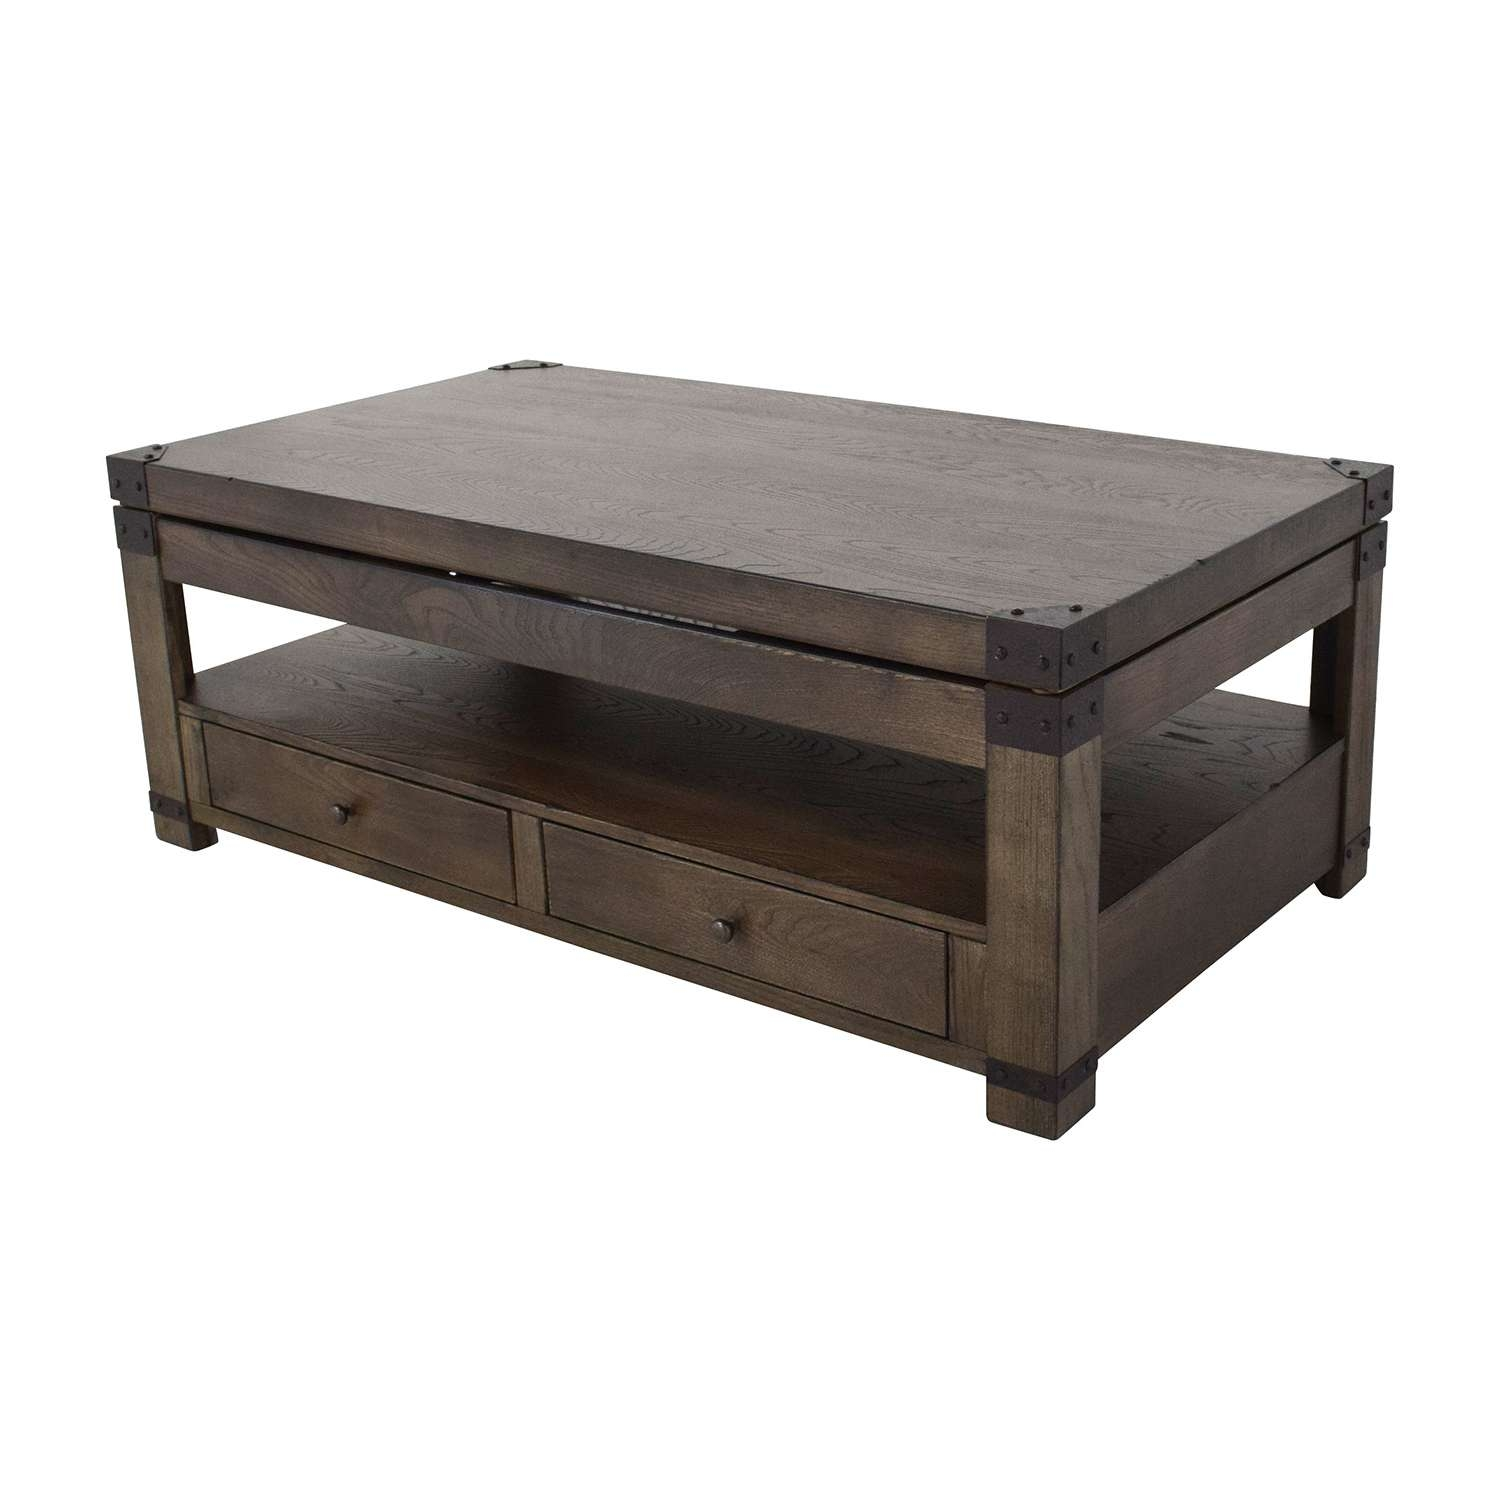 [%well Liked Joss And Main Coffee Tables Inside 35% Off – Joss And Main Joss And Main Kieran Coffee Table / Tables|35% Off – Joss And Main Joss And Main Kieran Coffee Table / Tables Regarding Current Joss And Main Coffee Tables%] (View 3 of 20)